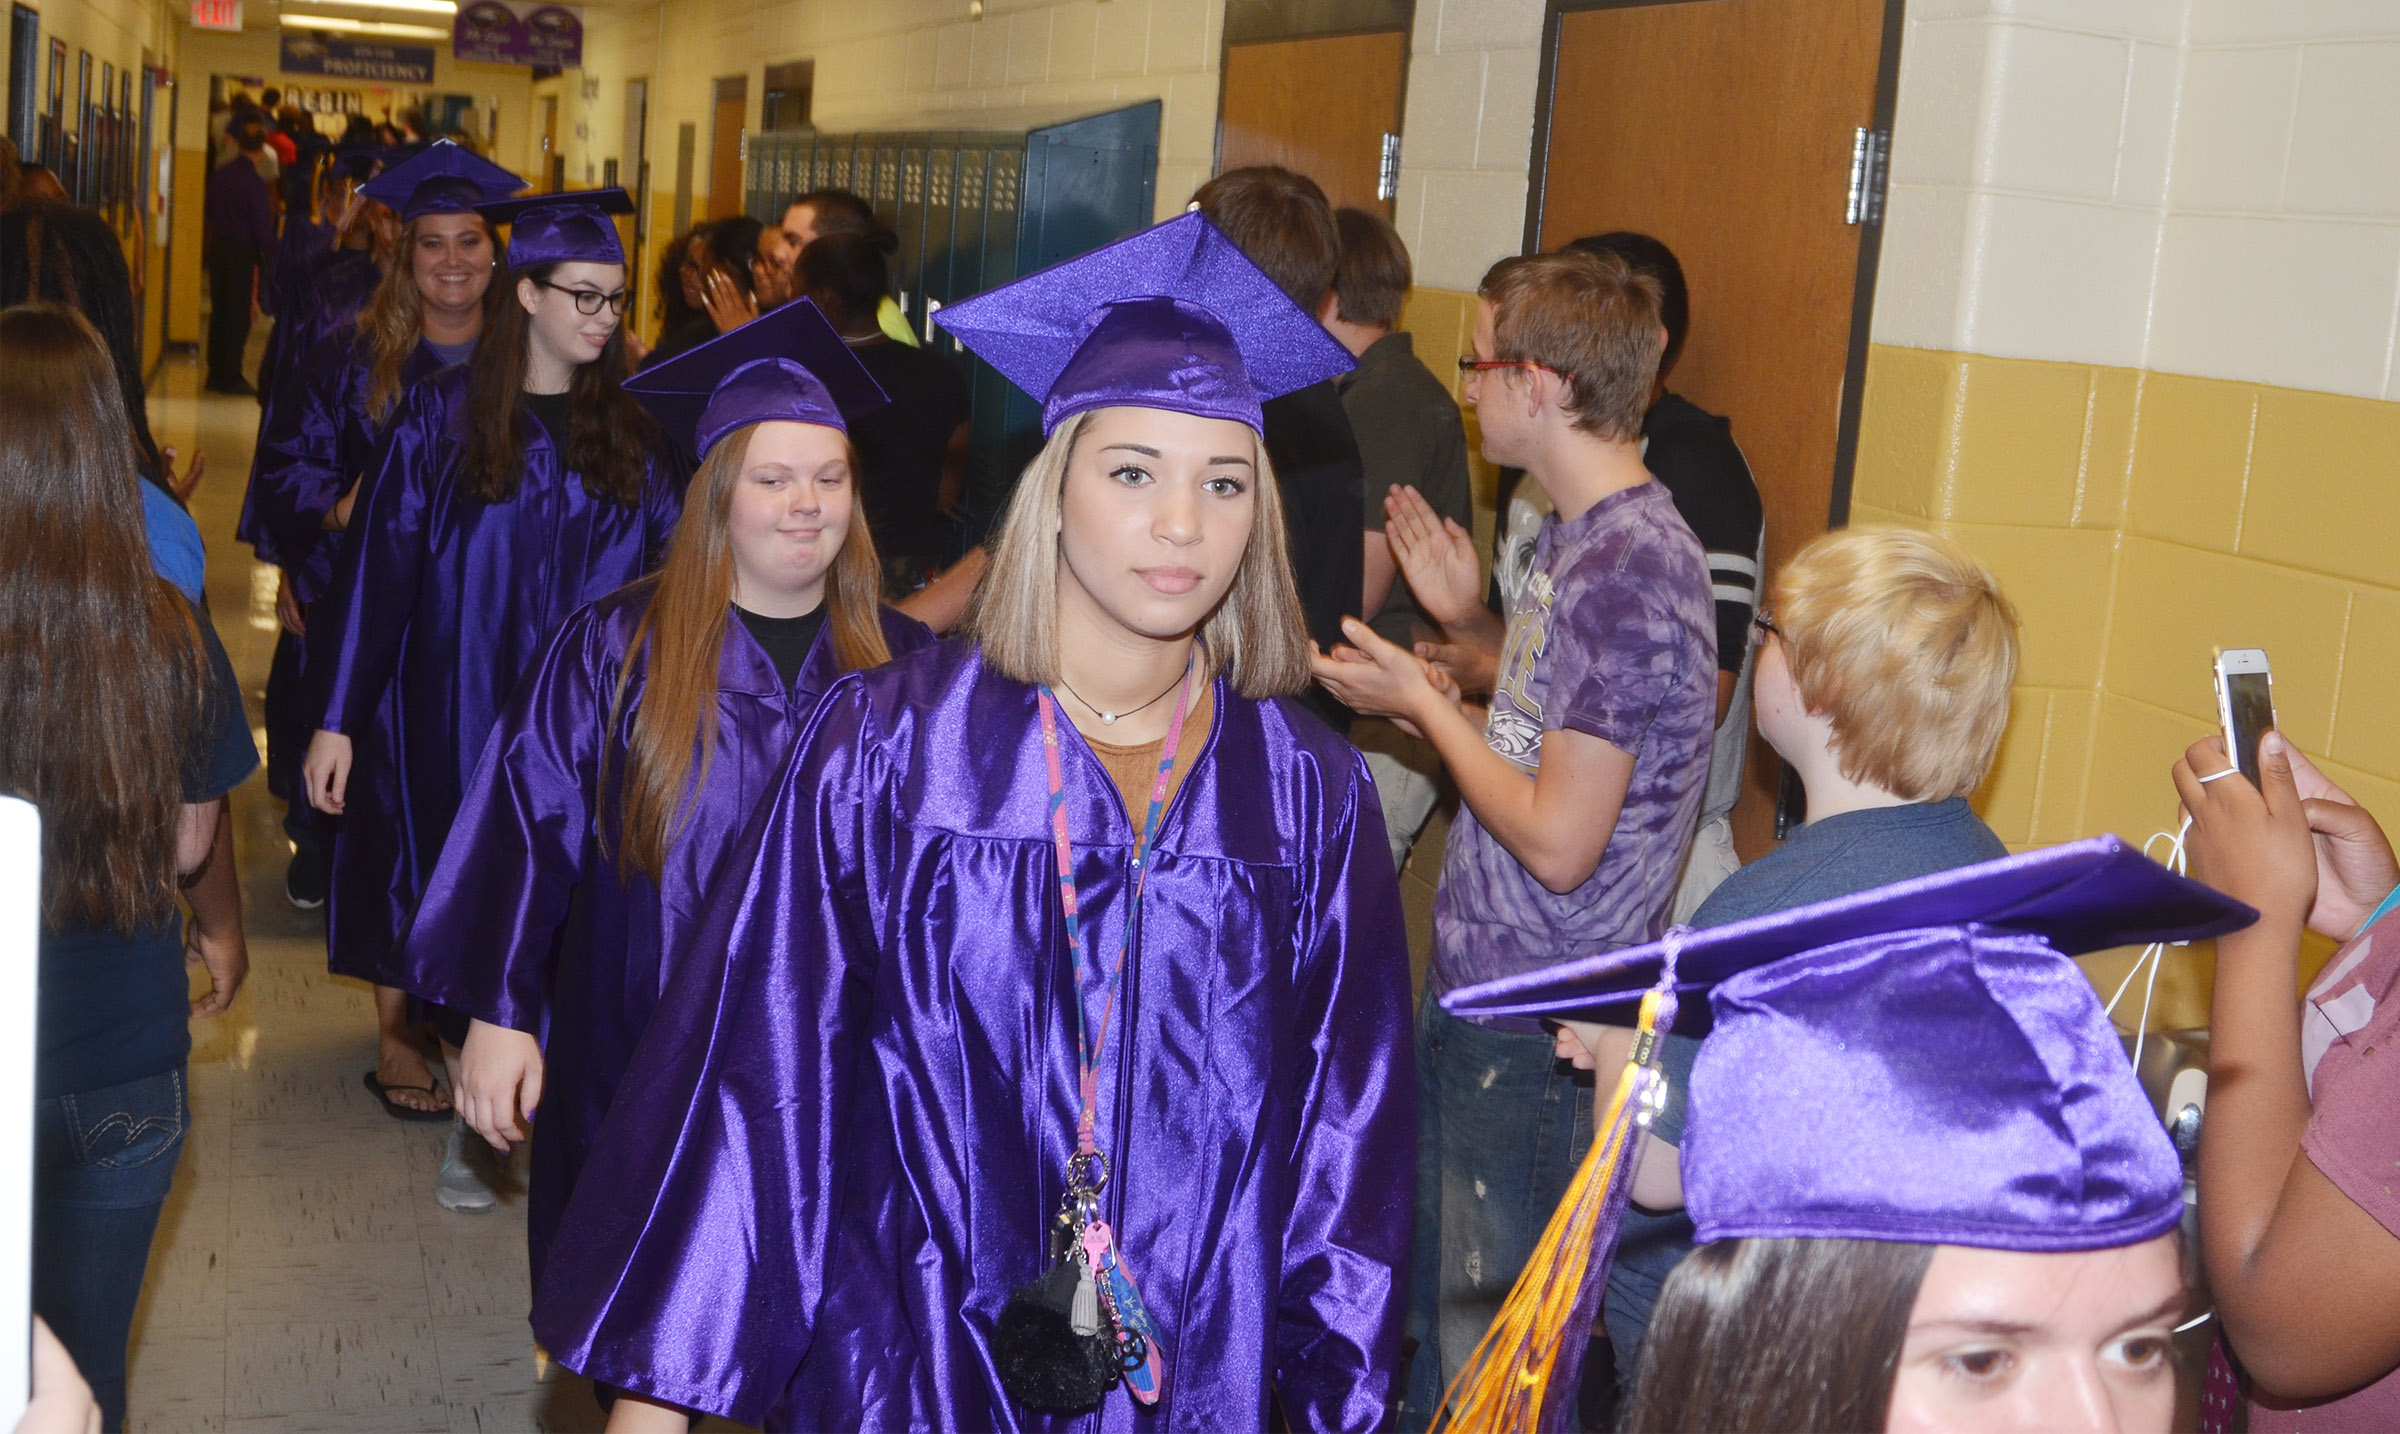 CHS senior Sidney Grady walks down the CHS hallways with her classmates.